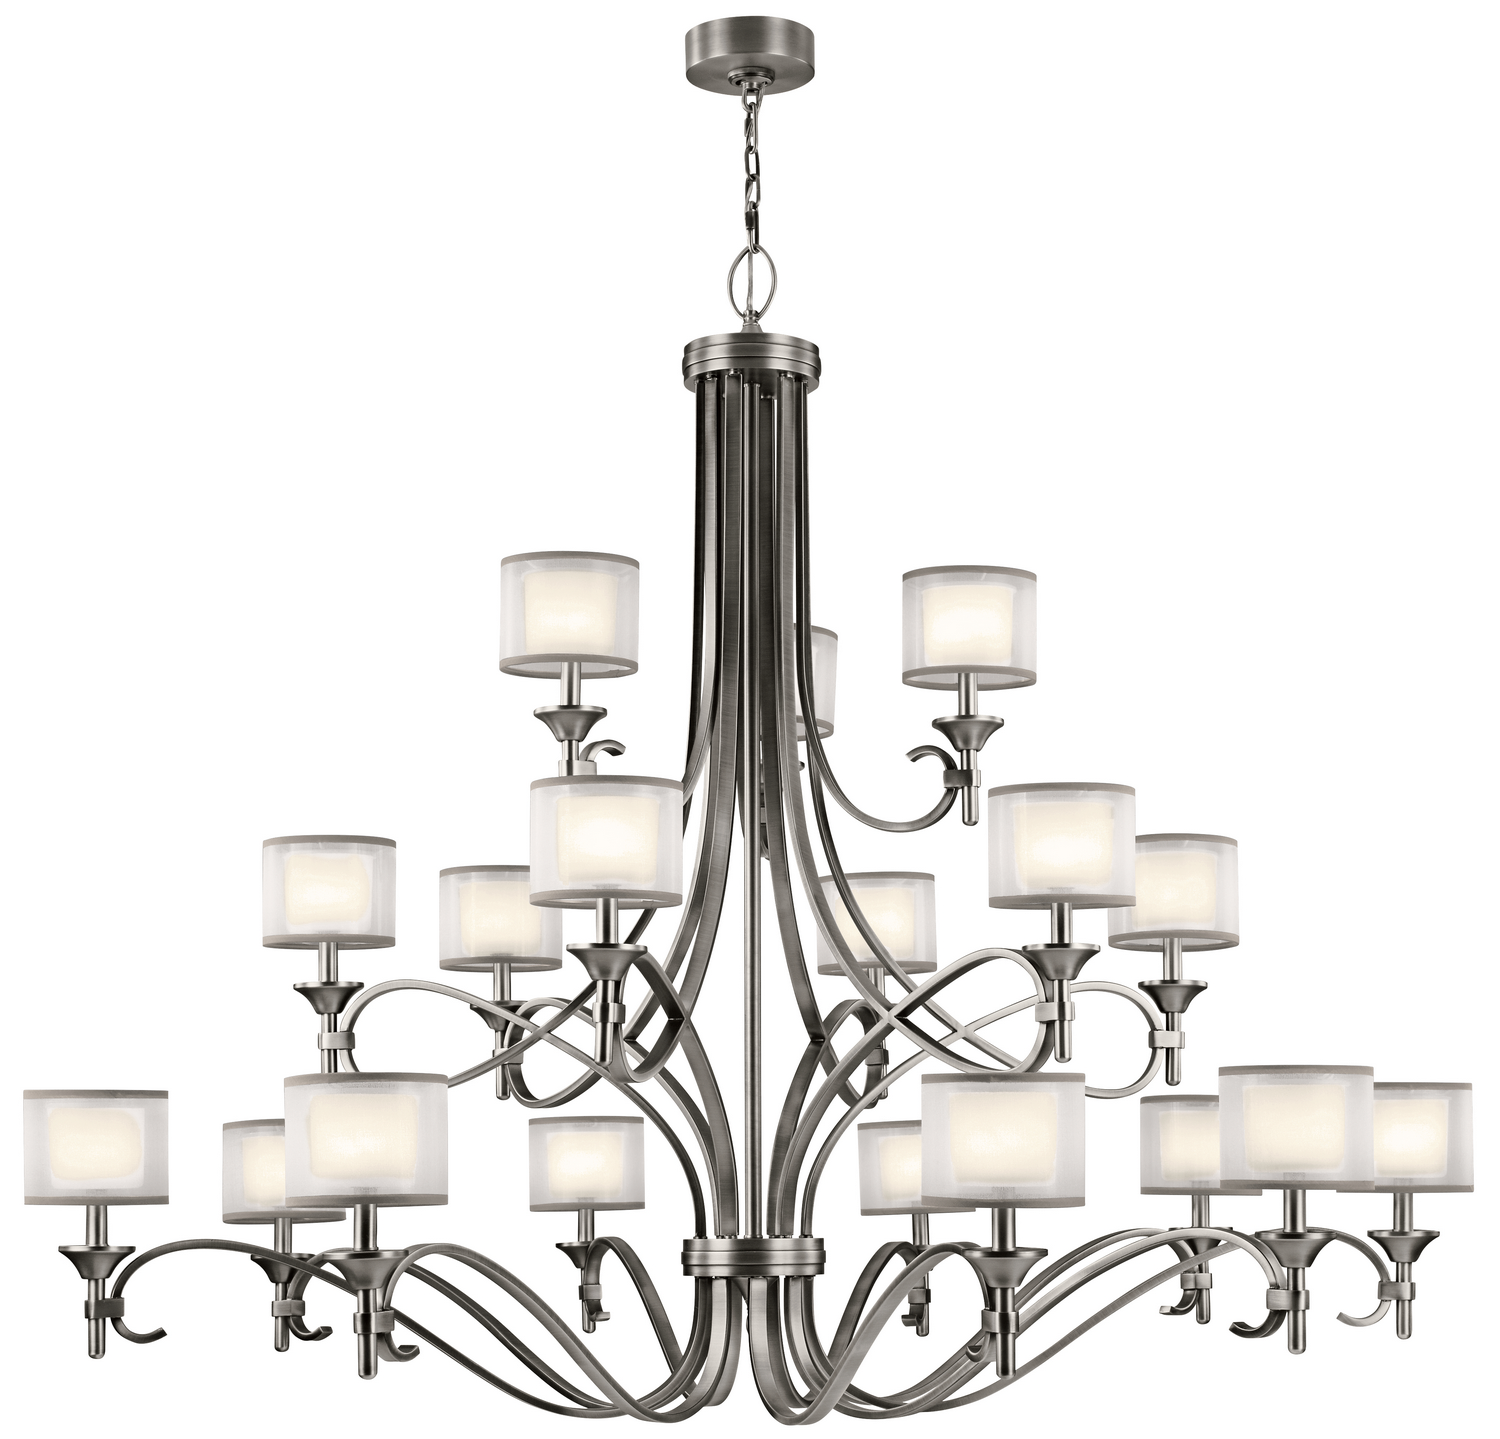 18 Light Chandelier from the Lacey collection by Kichler 42396AP